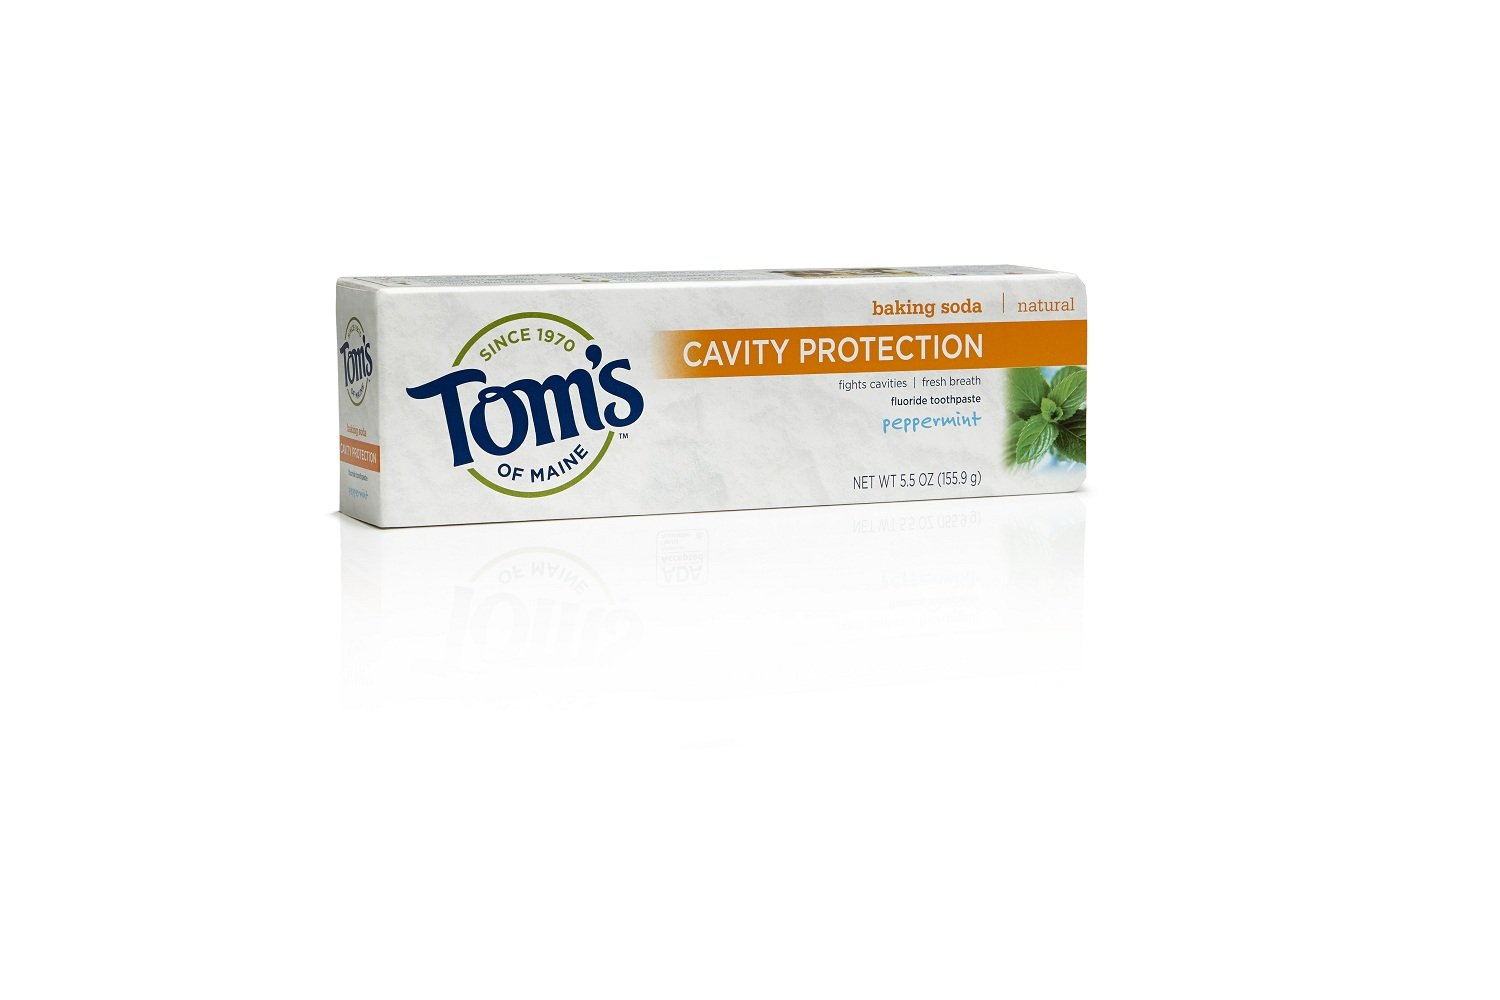 Tom's of Maine 683077 Cavity Protection Natural Toothpaste, Peppermint, 5.5 Ounce, 24 Count